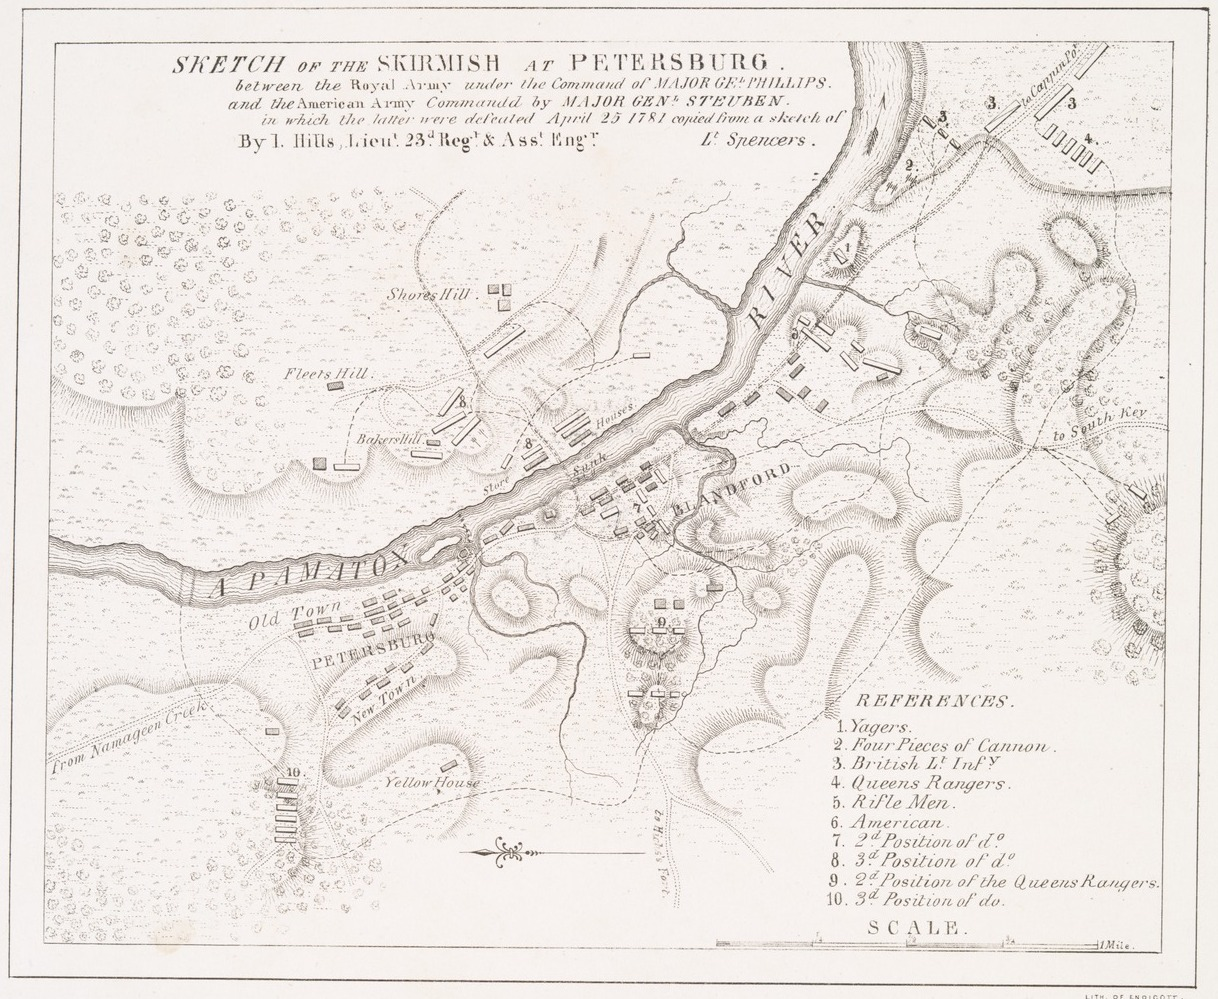 Battle Of Blandford or Petersburg 1781